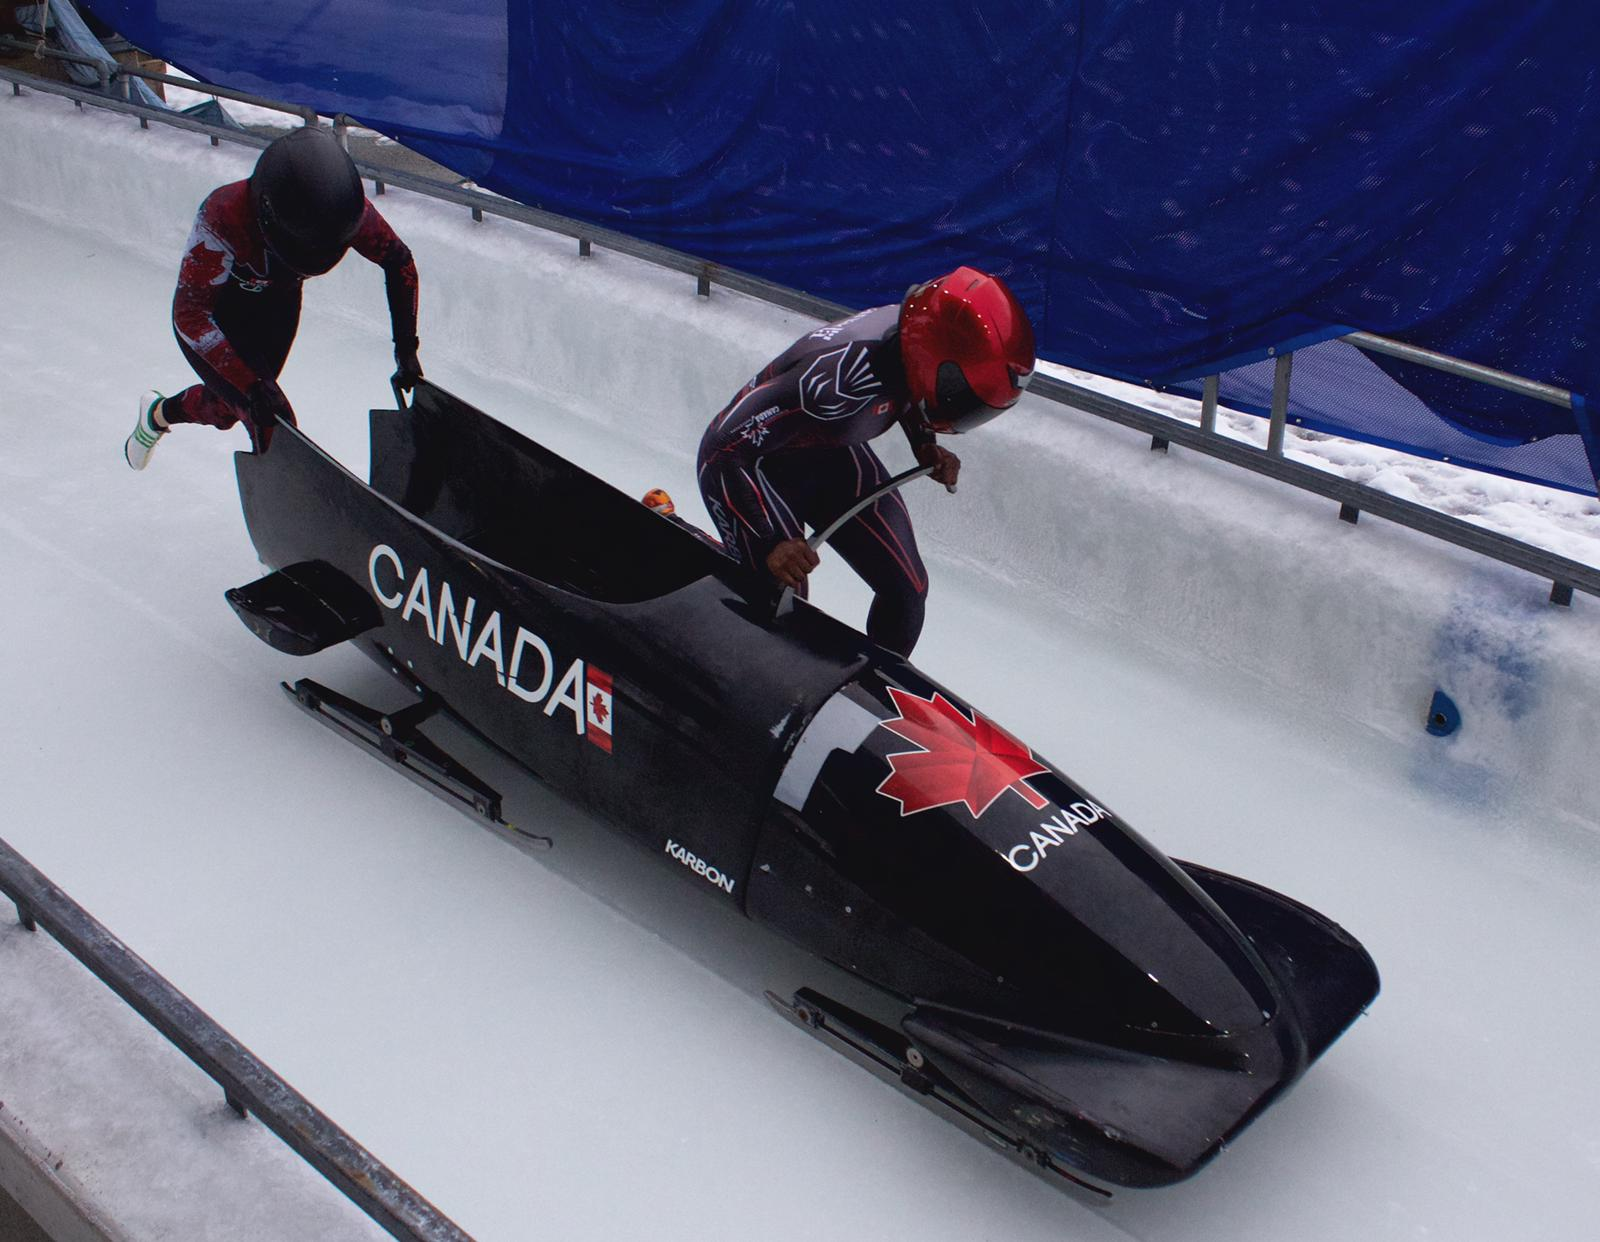 Two bobsledders push a sled at the start of a run